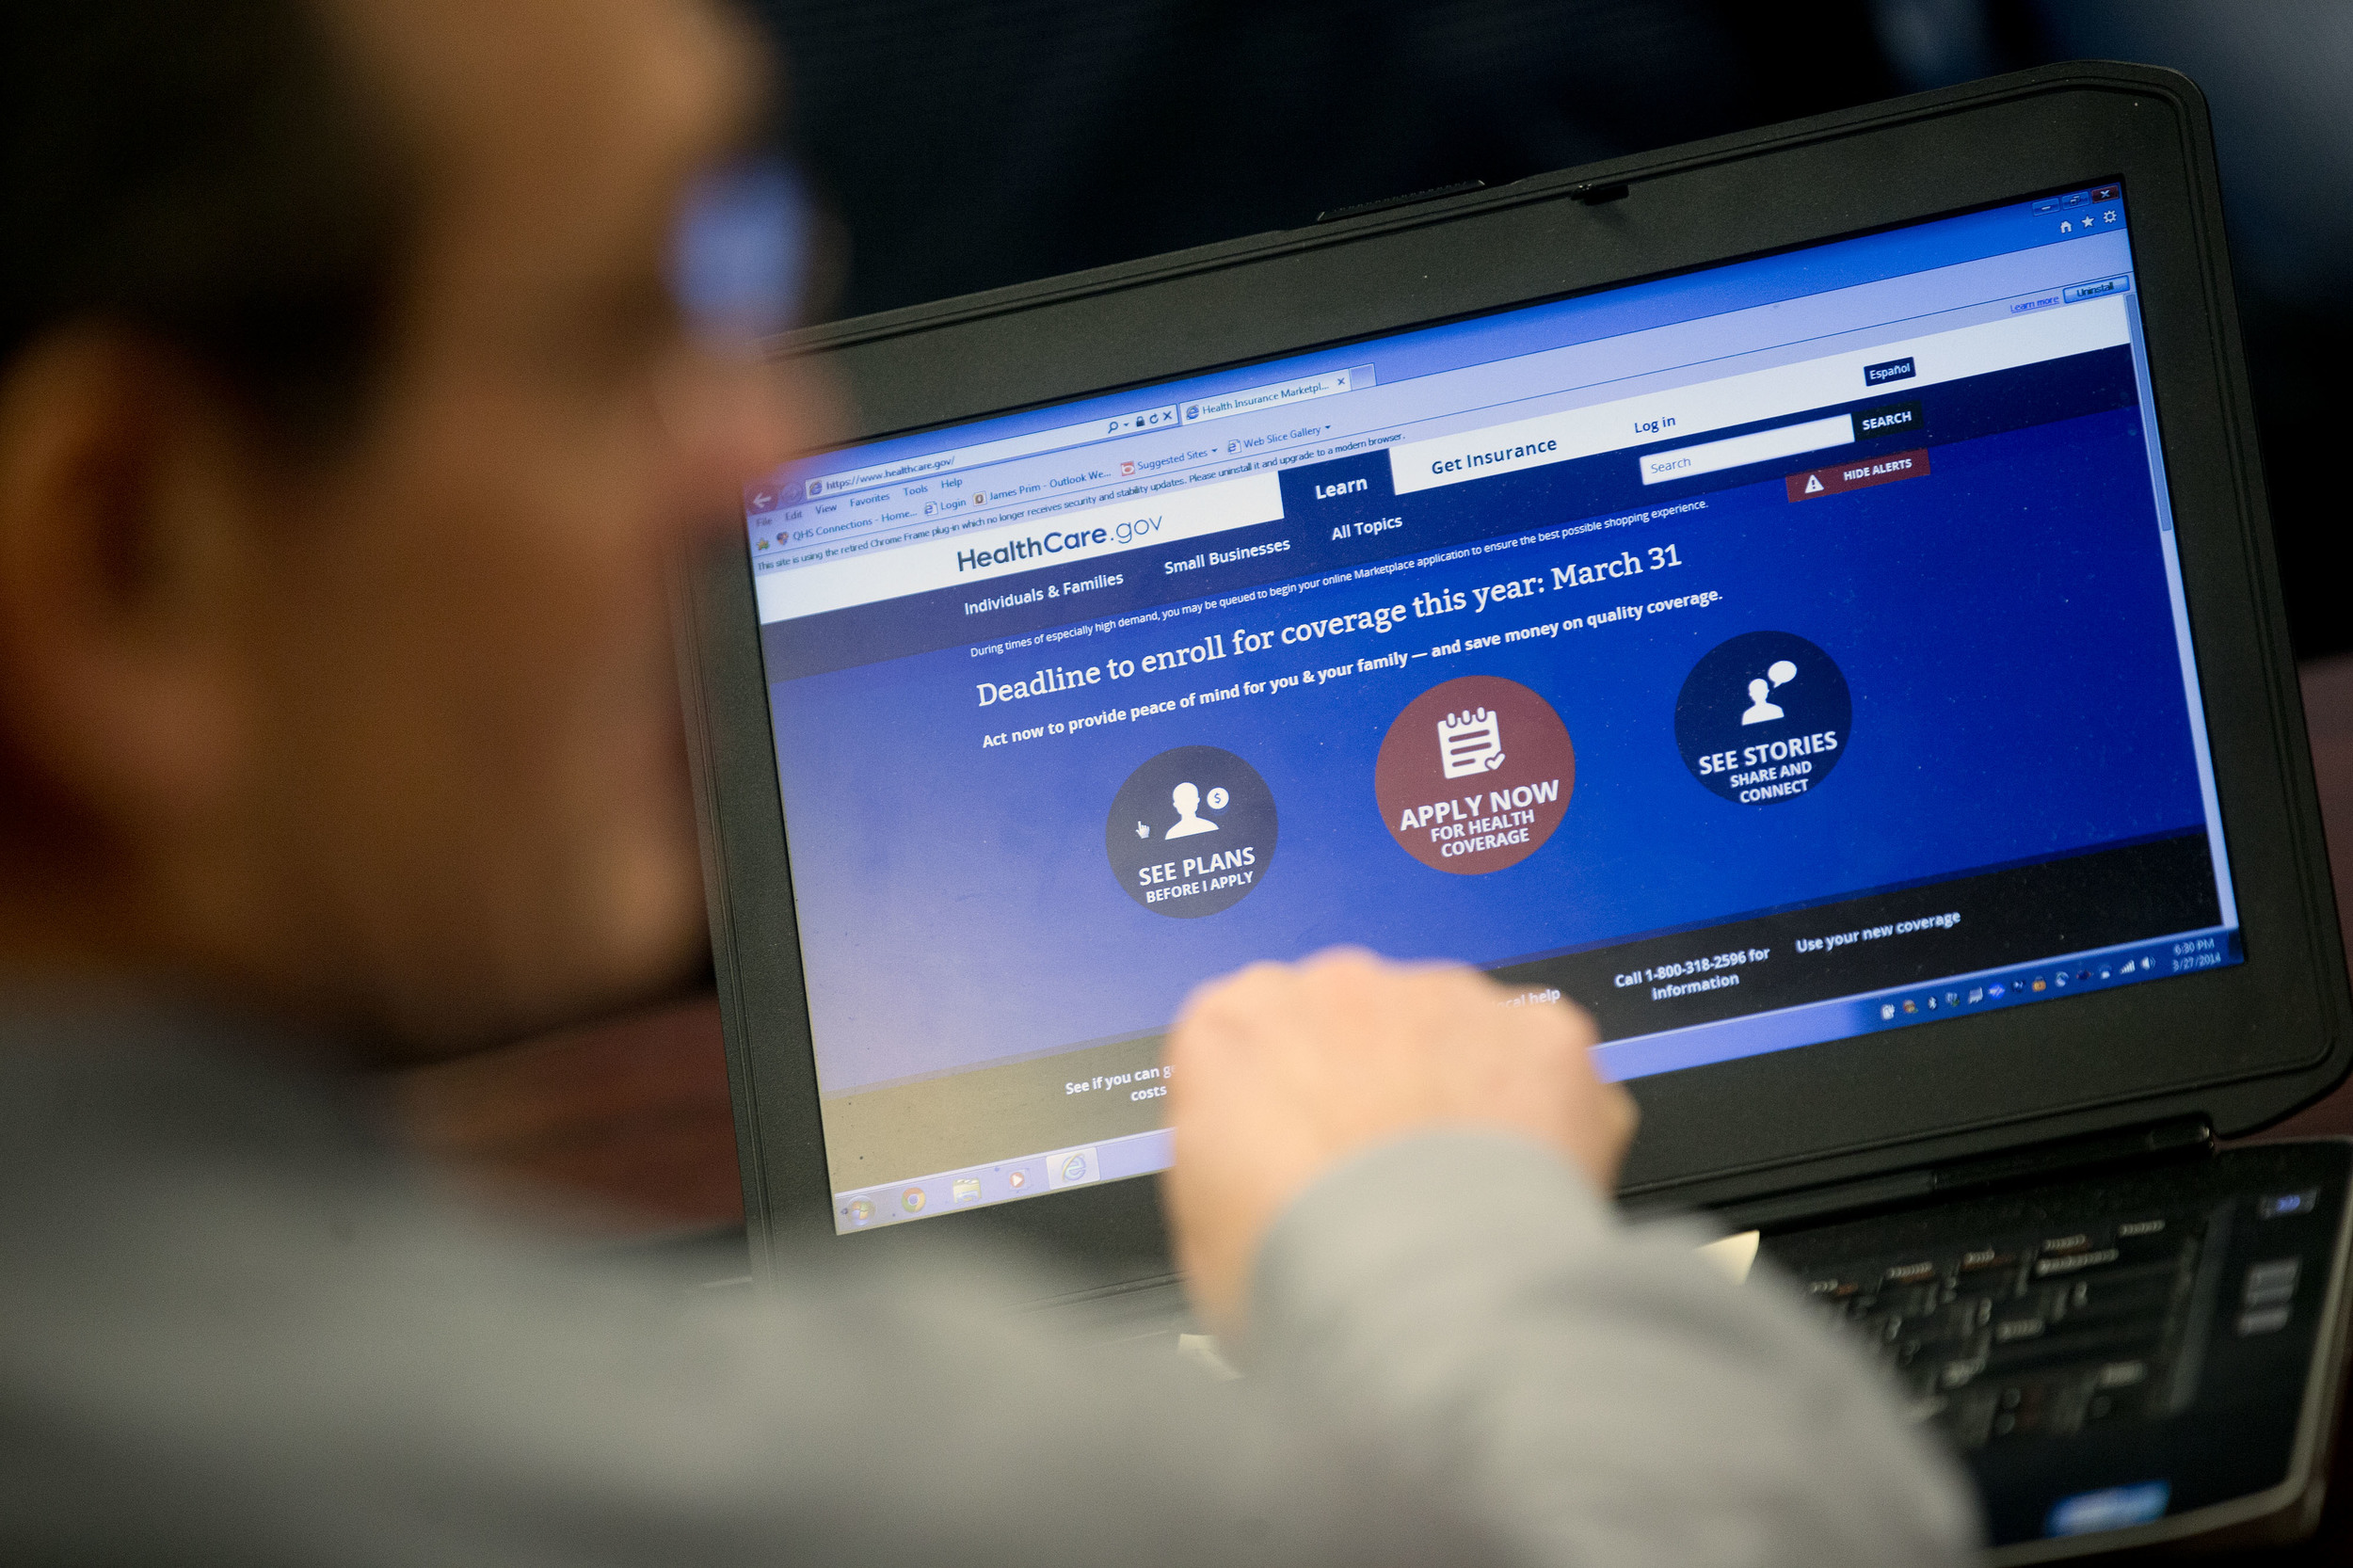 US won't reveal records on health website security - AOL News